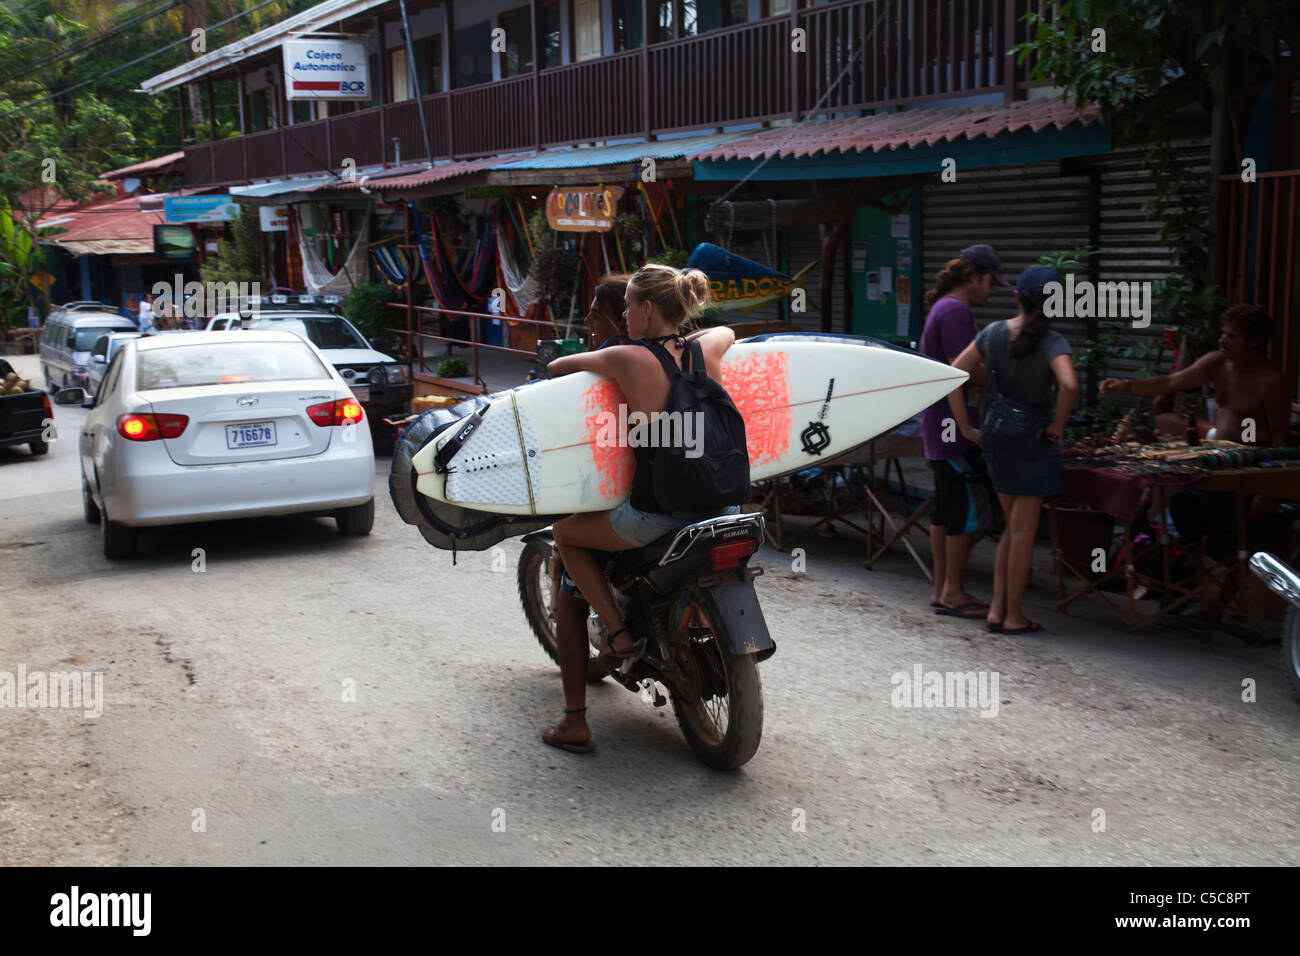 Streetscene with surfers on motorbike wih boards Montezuma Costa Rica - Stock Image